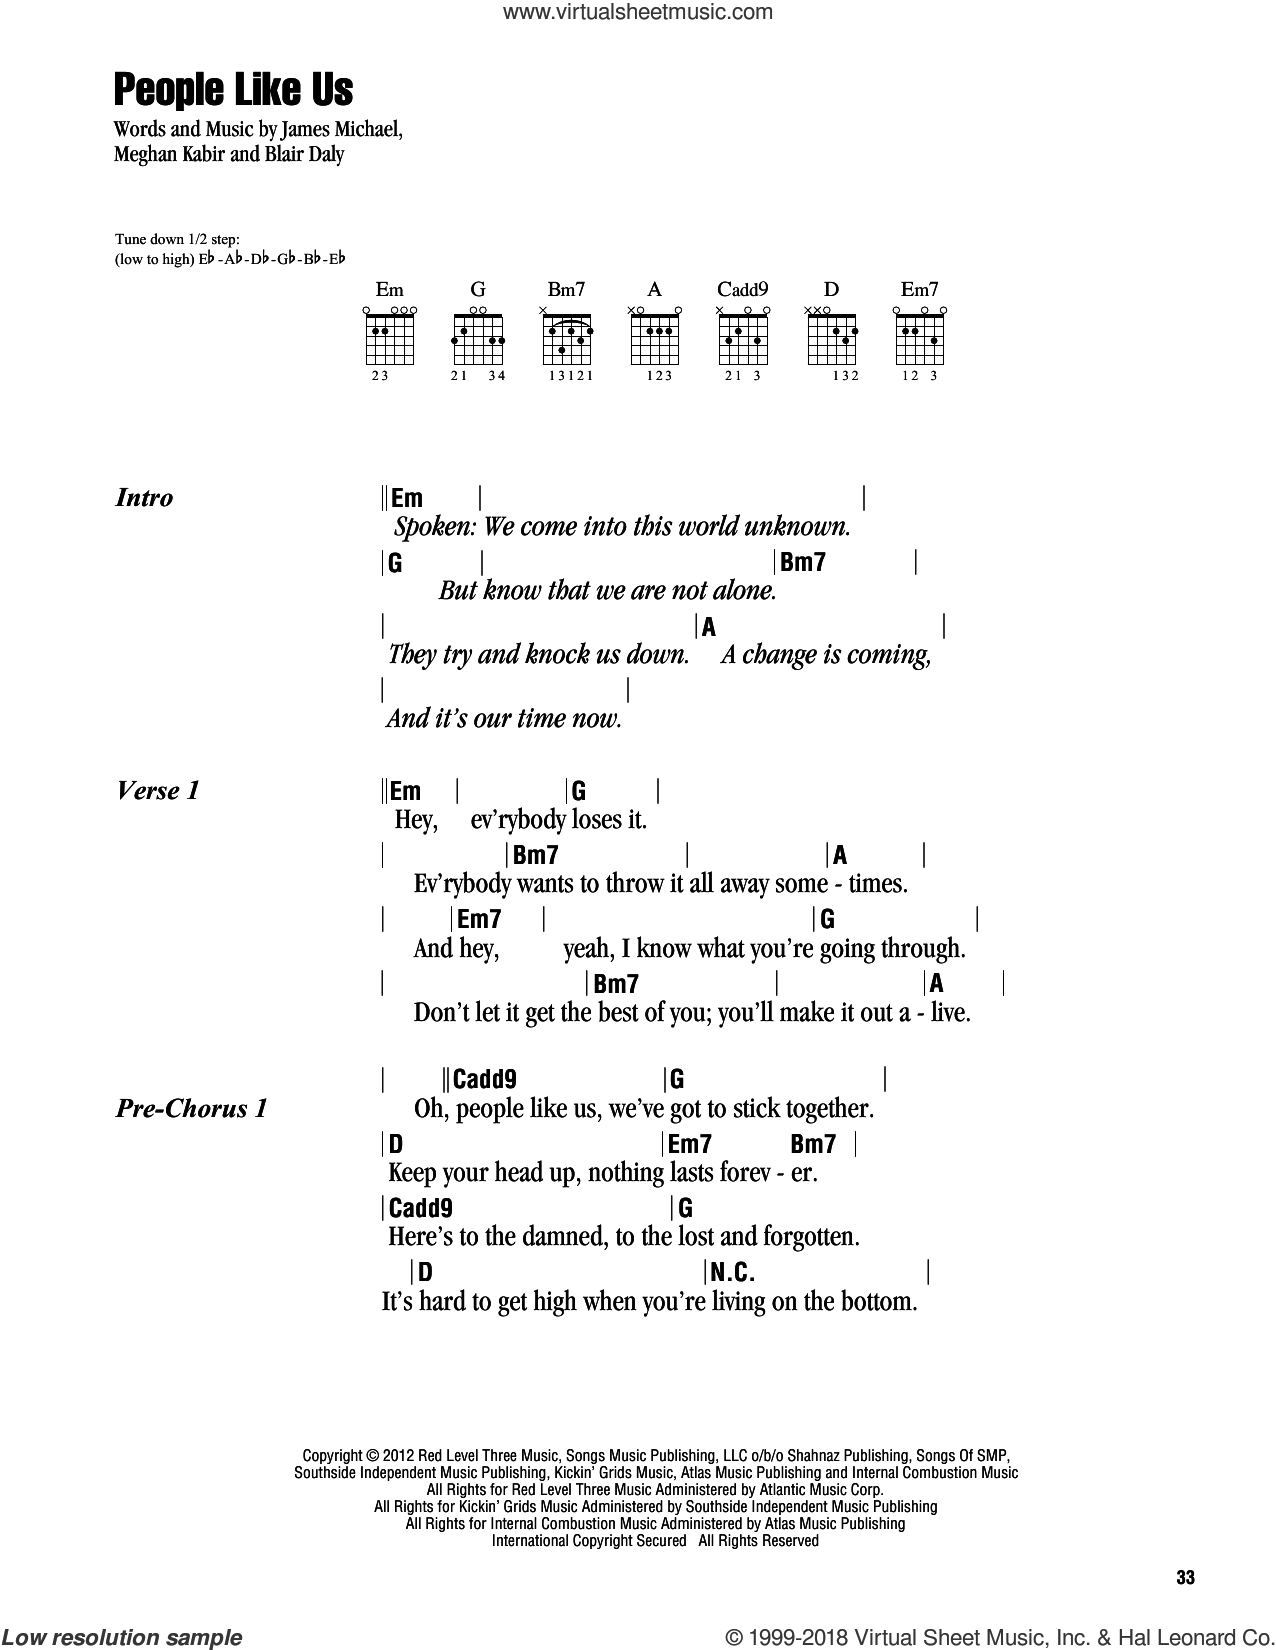 People Like Us sheet music for guitar (chords) by Kelly Clarkson, Blair Daly, James Michael and Meghan Kabir, intermediate skill level